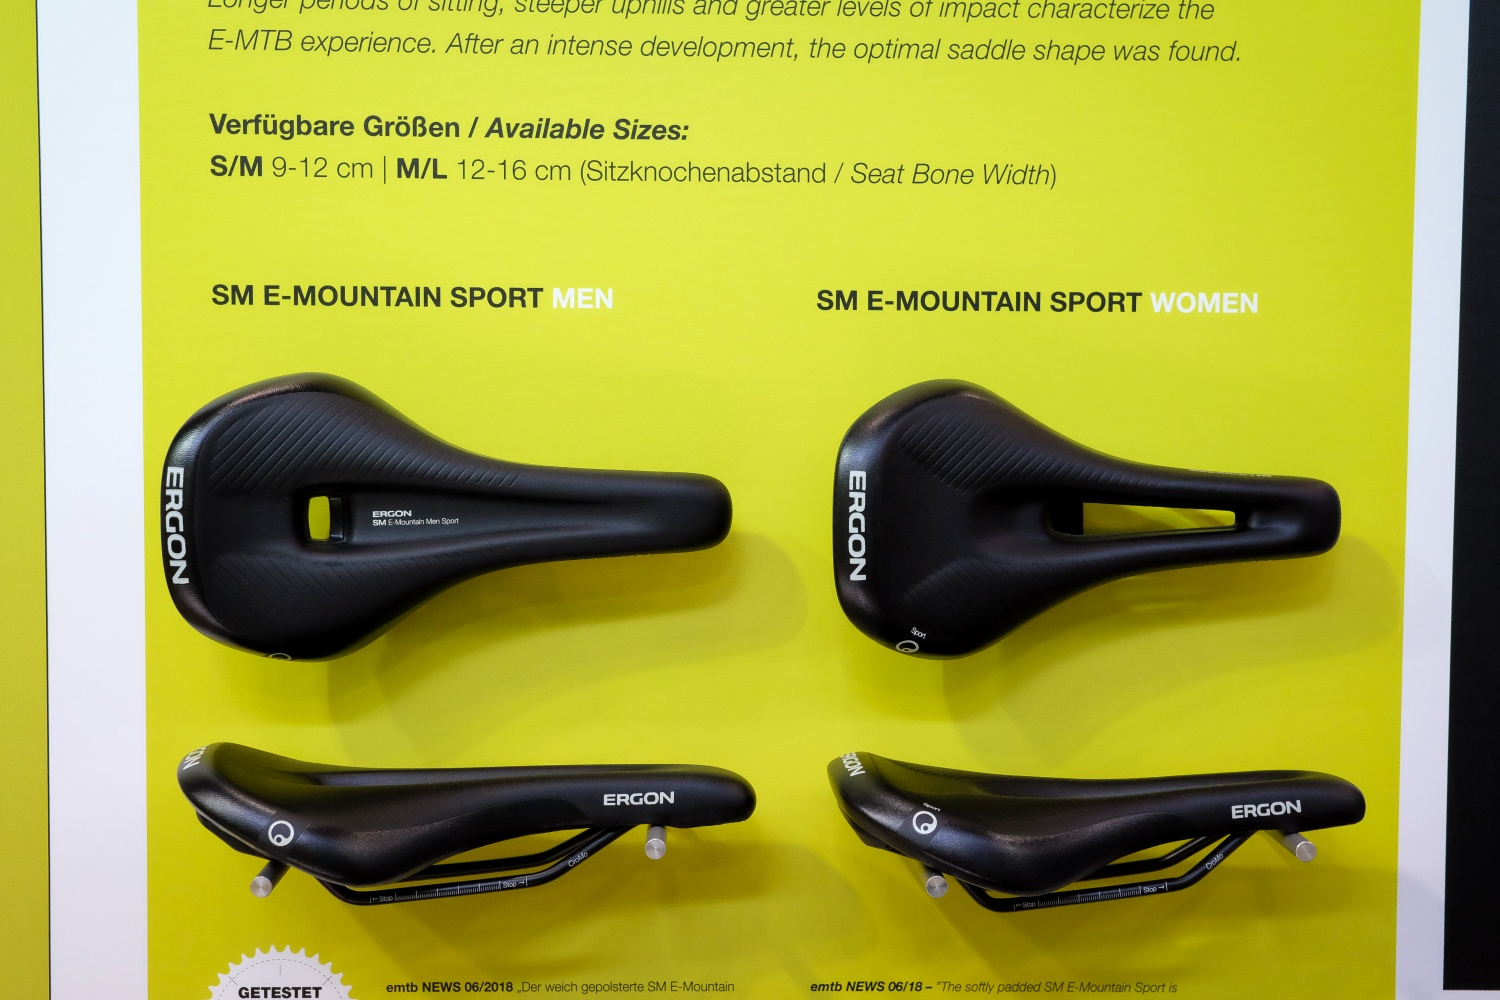 Ergon SM-E Mountain Sport Saddle